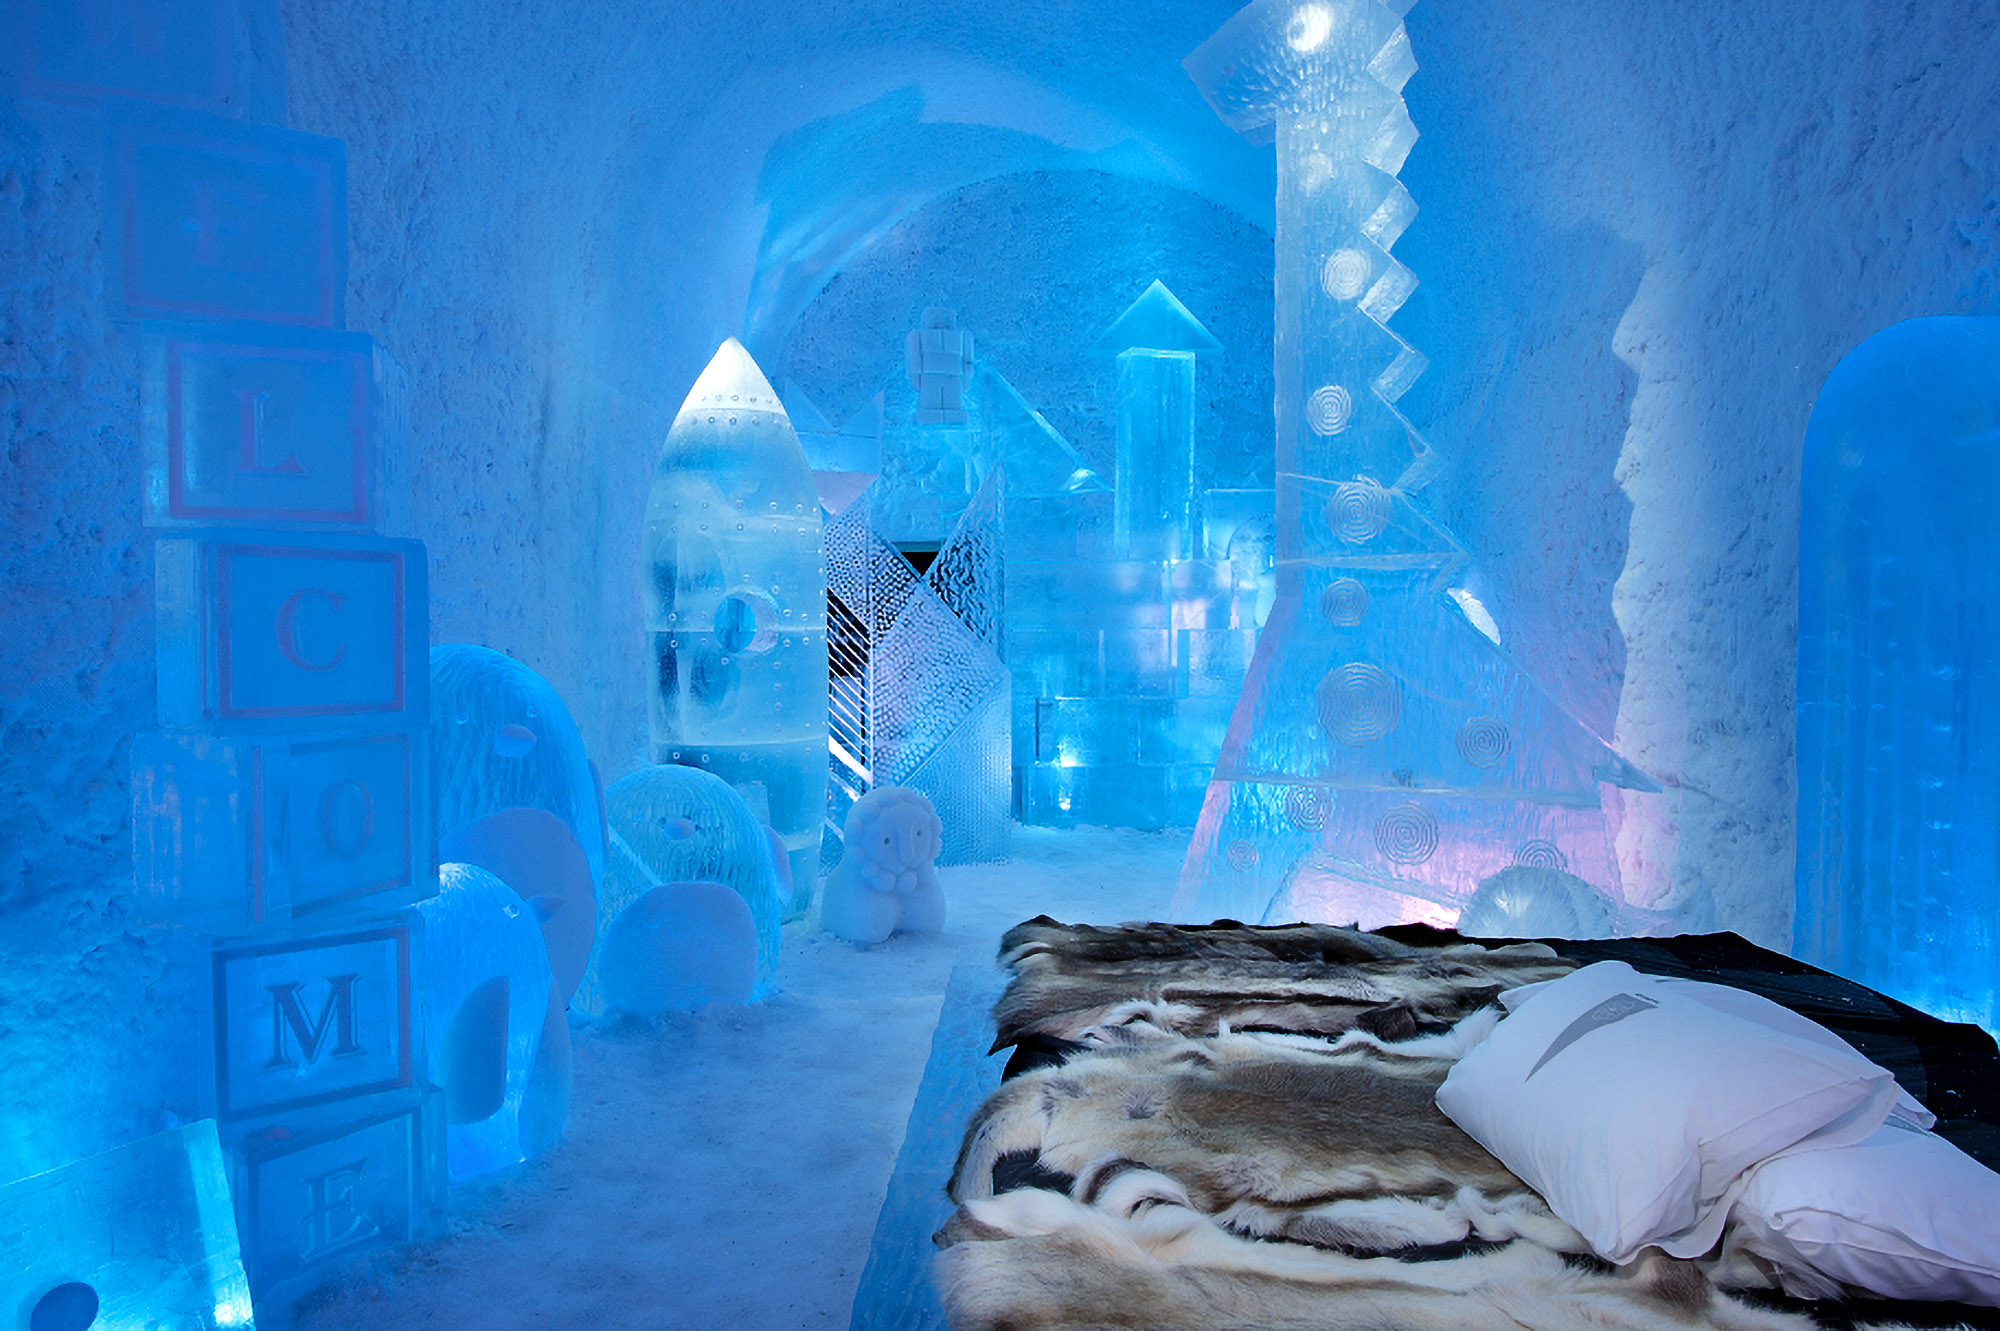 Lap of Luxury: Cool Ice Hotel Opens in Lapland